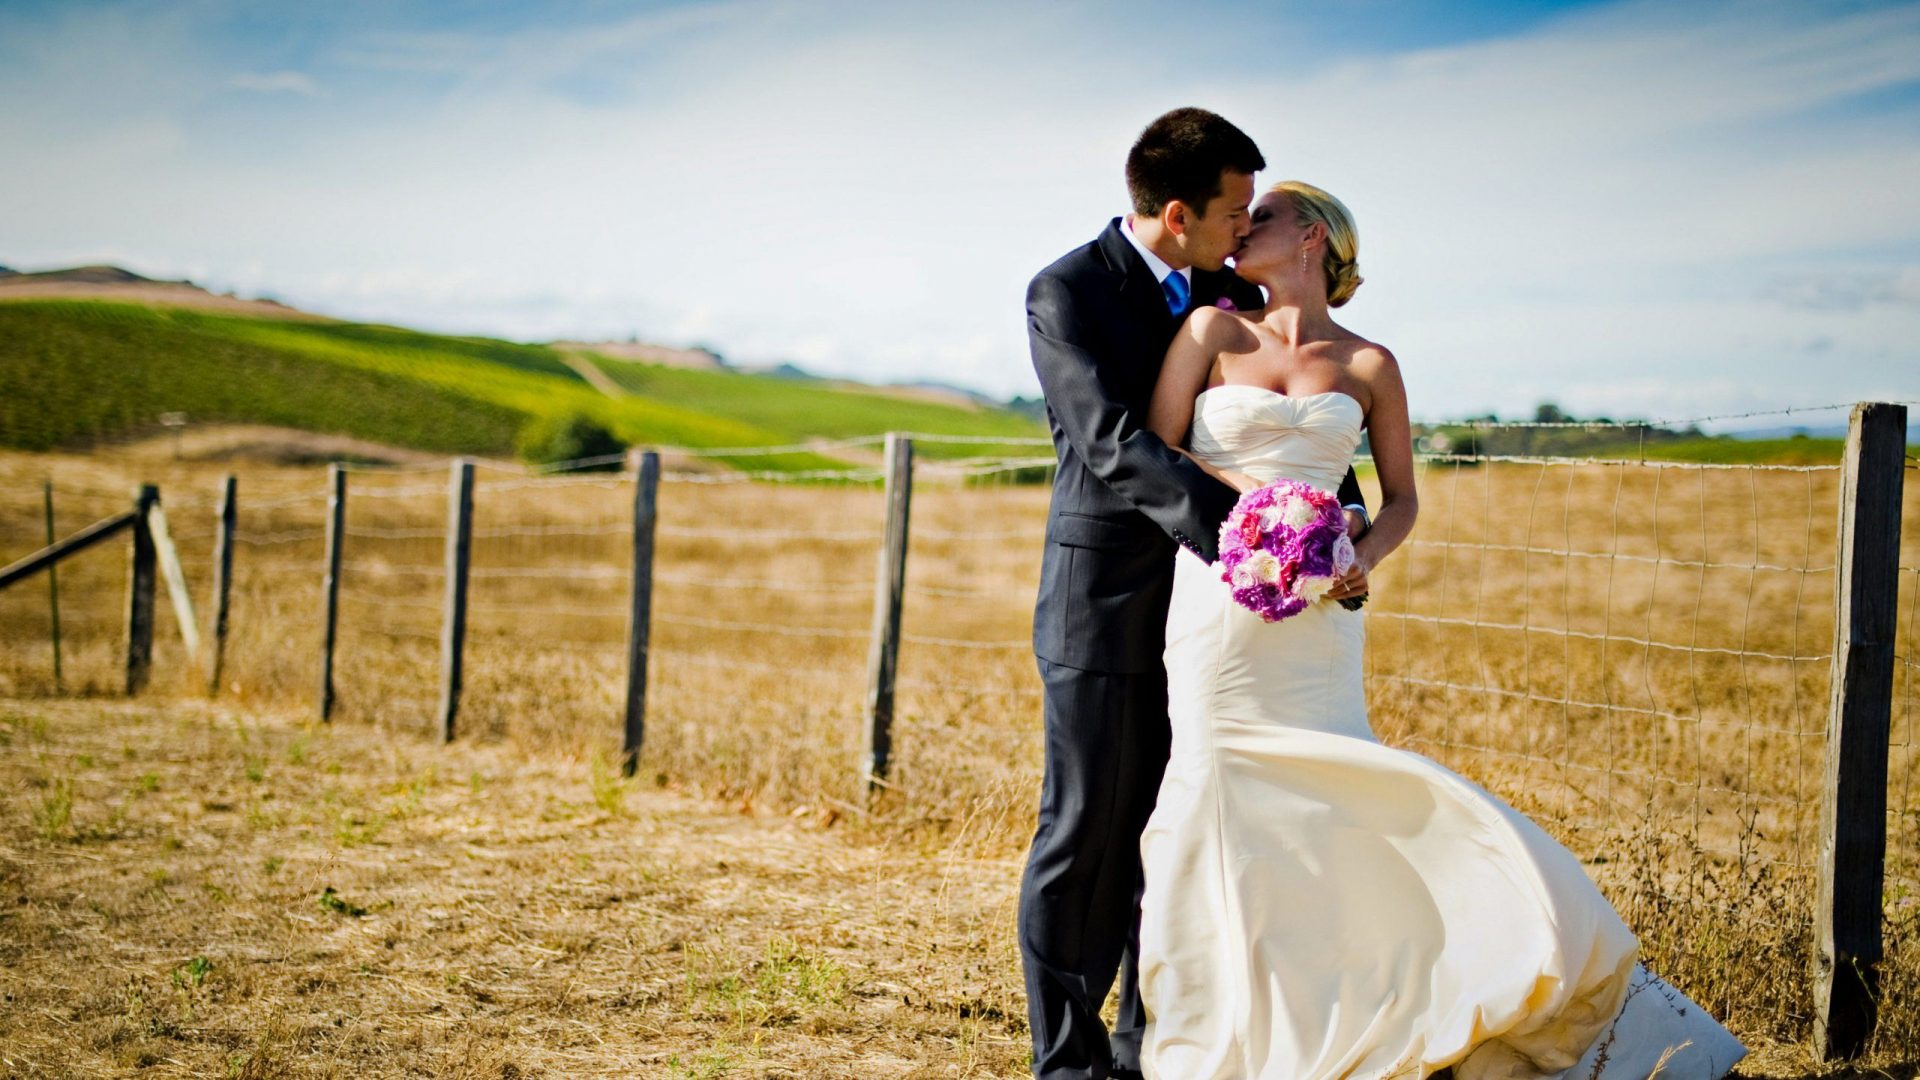 Useful tips for finding the best Wedding Photography Melbourne professionals